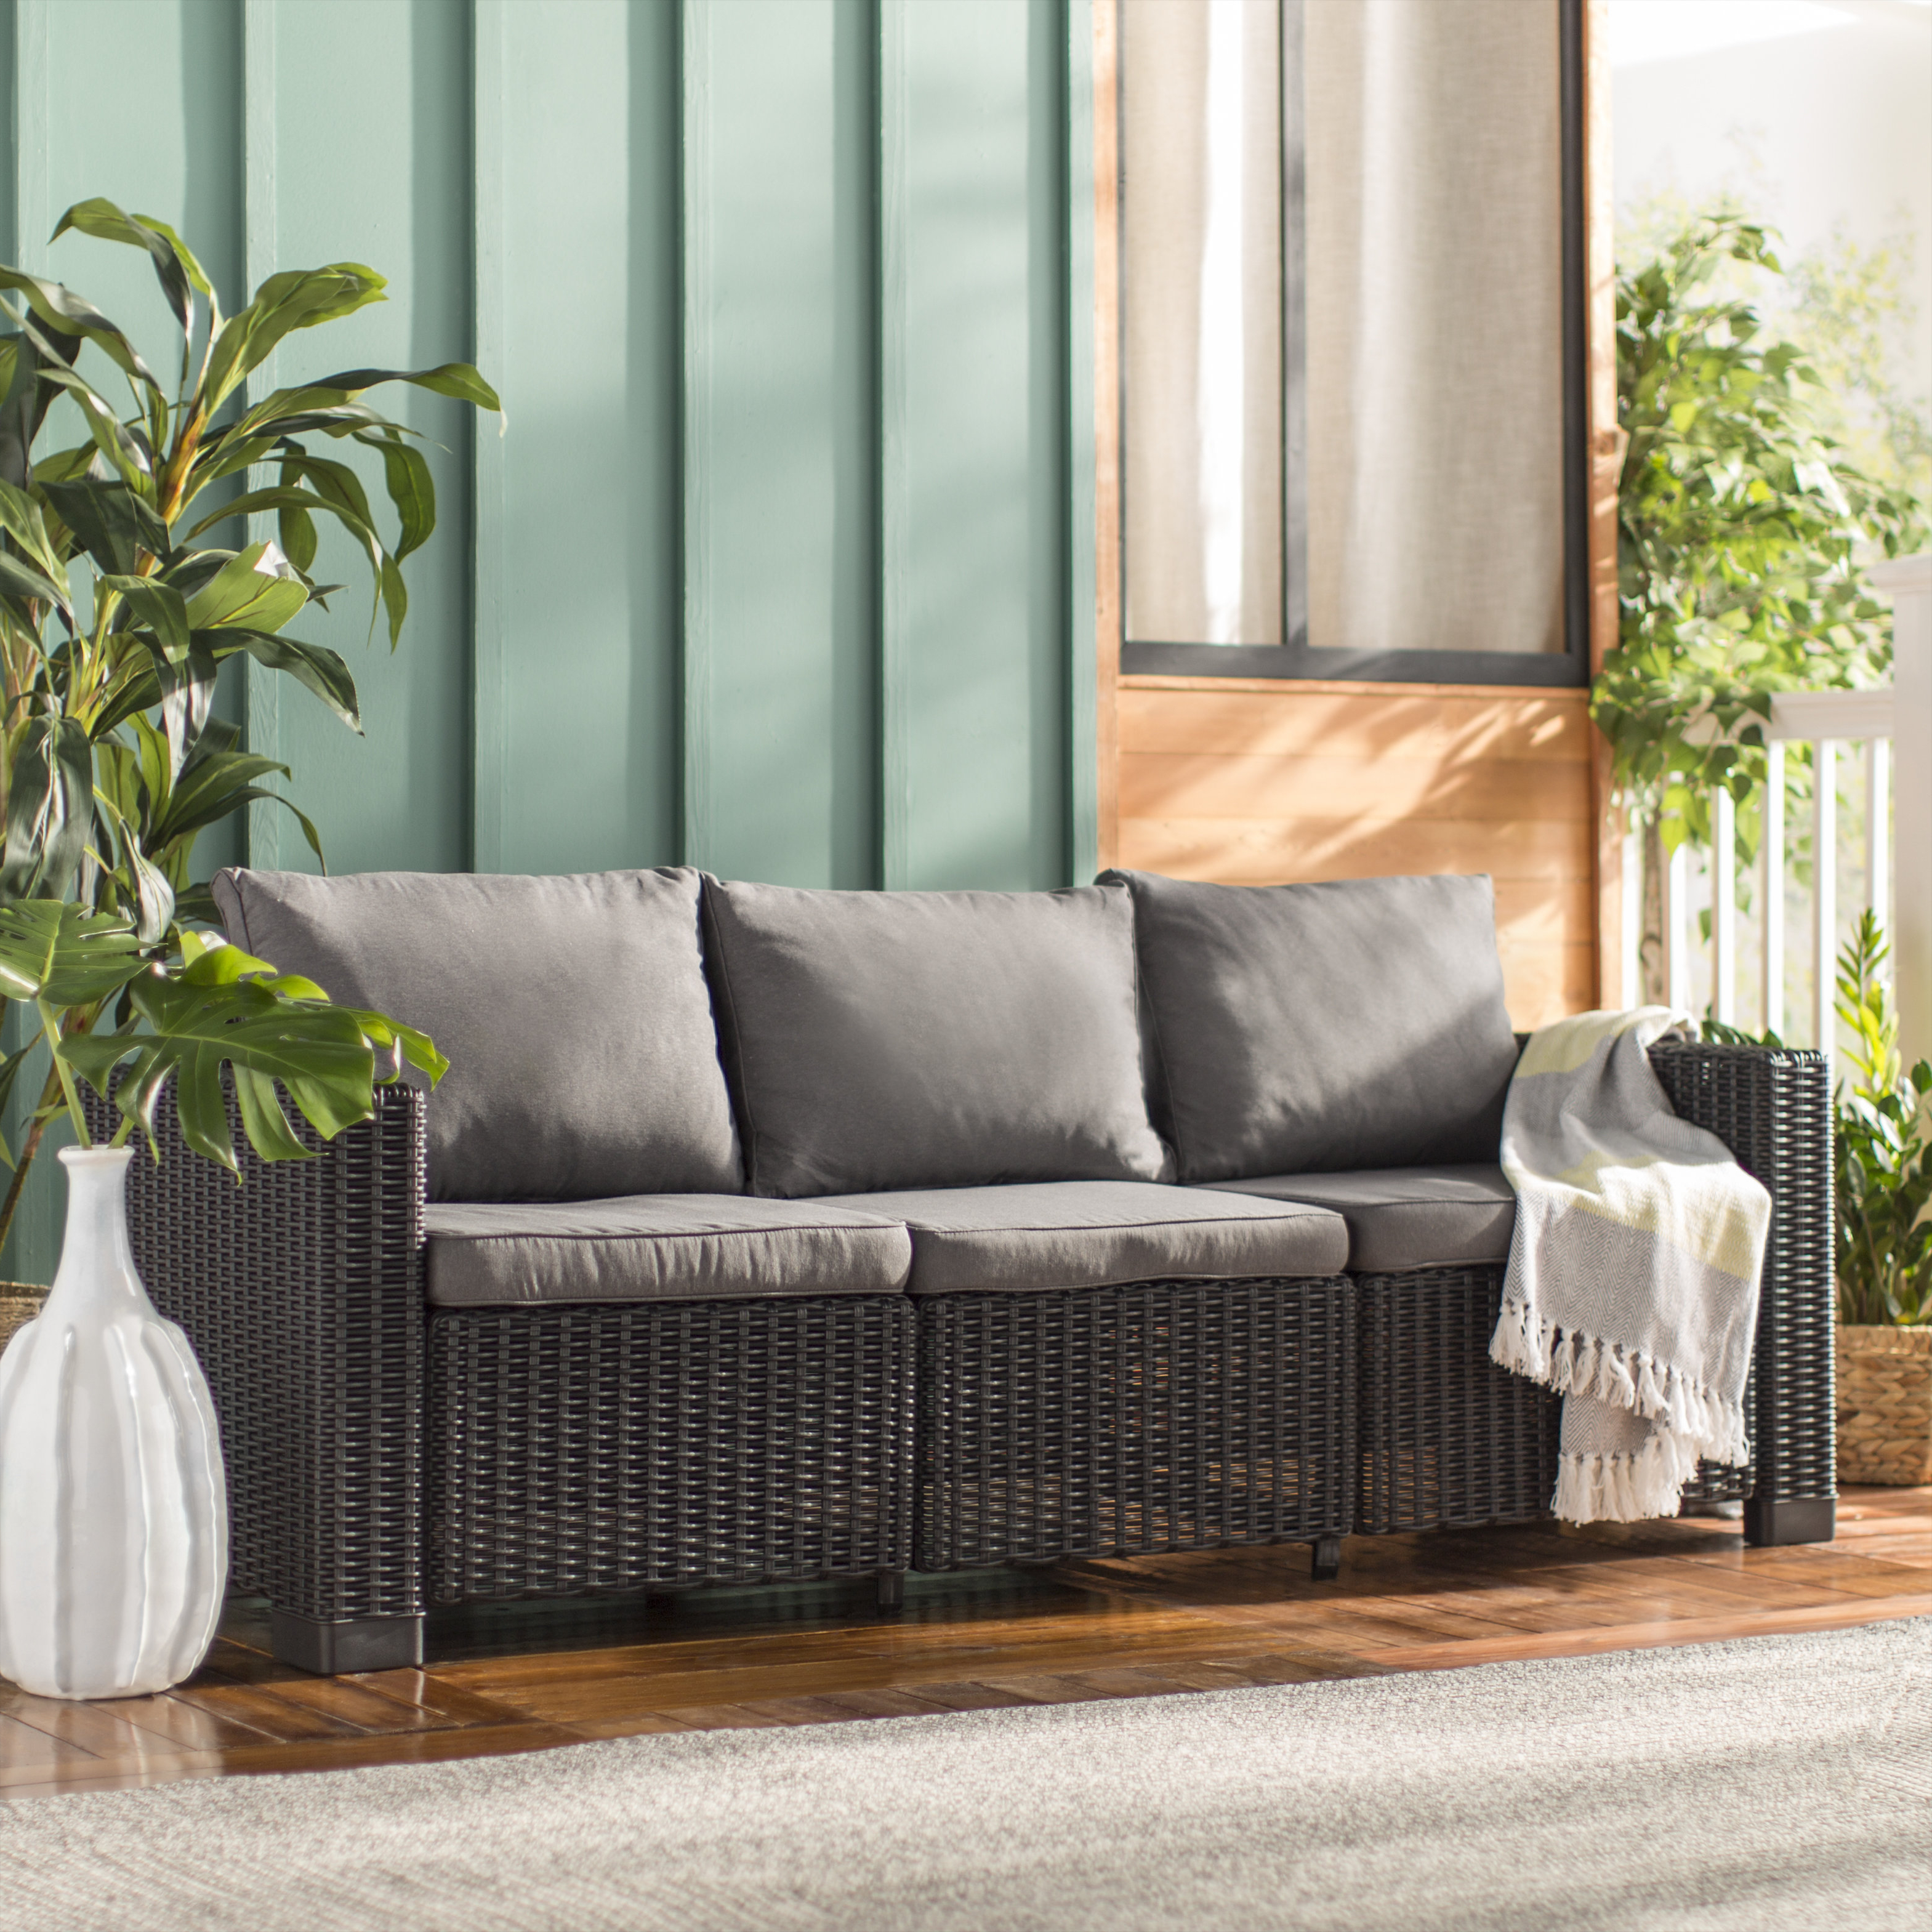 Stallcup Patio Sofa With Cushions Inside Most Popular Silloth Patio Sofas With Cushions (View 18 of 20)